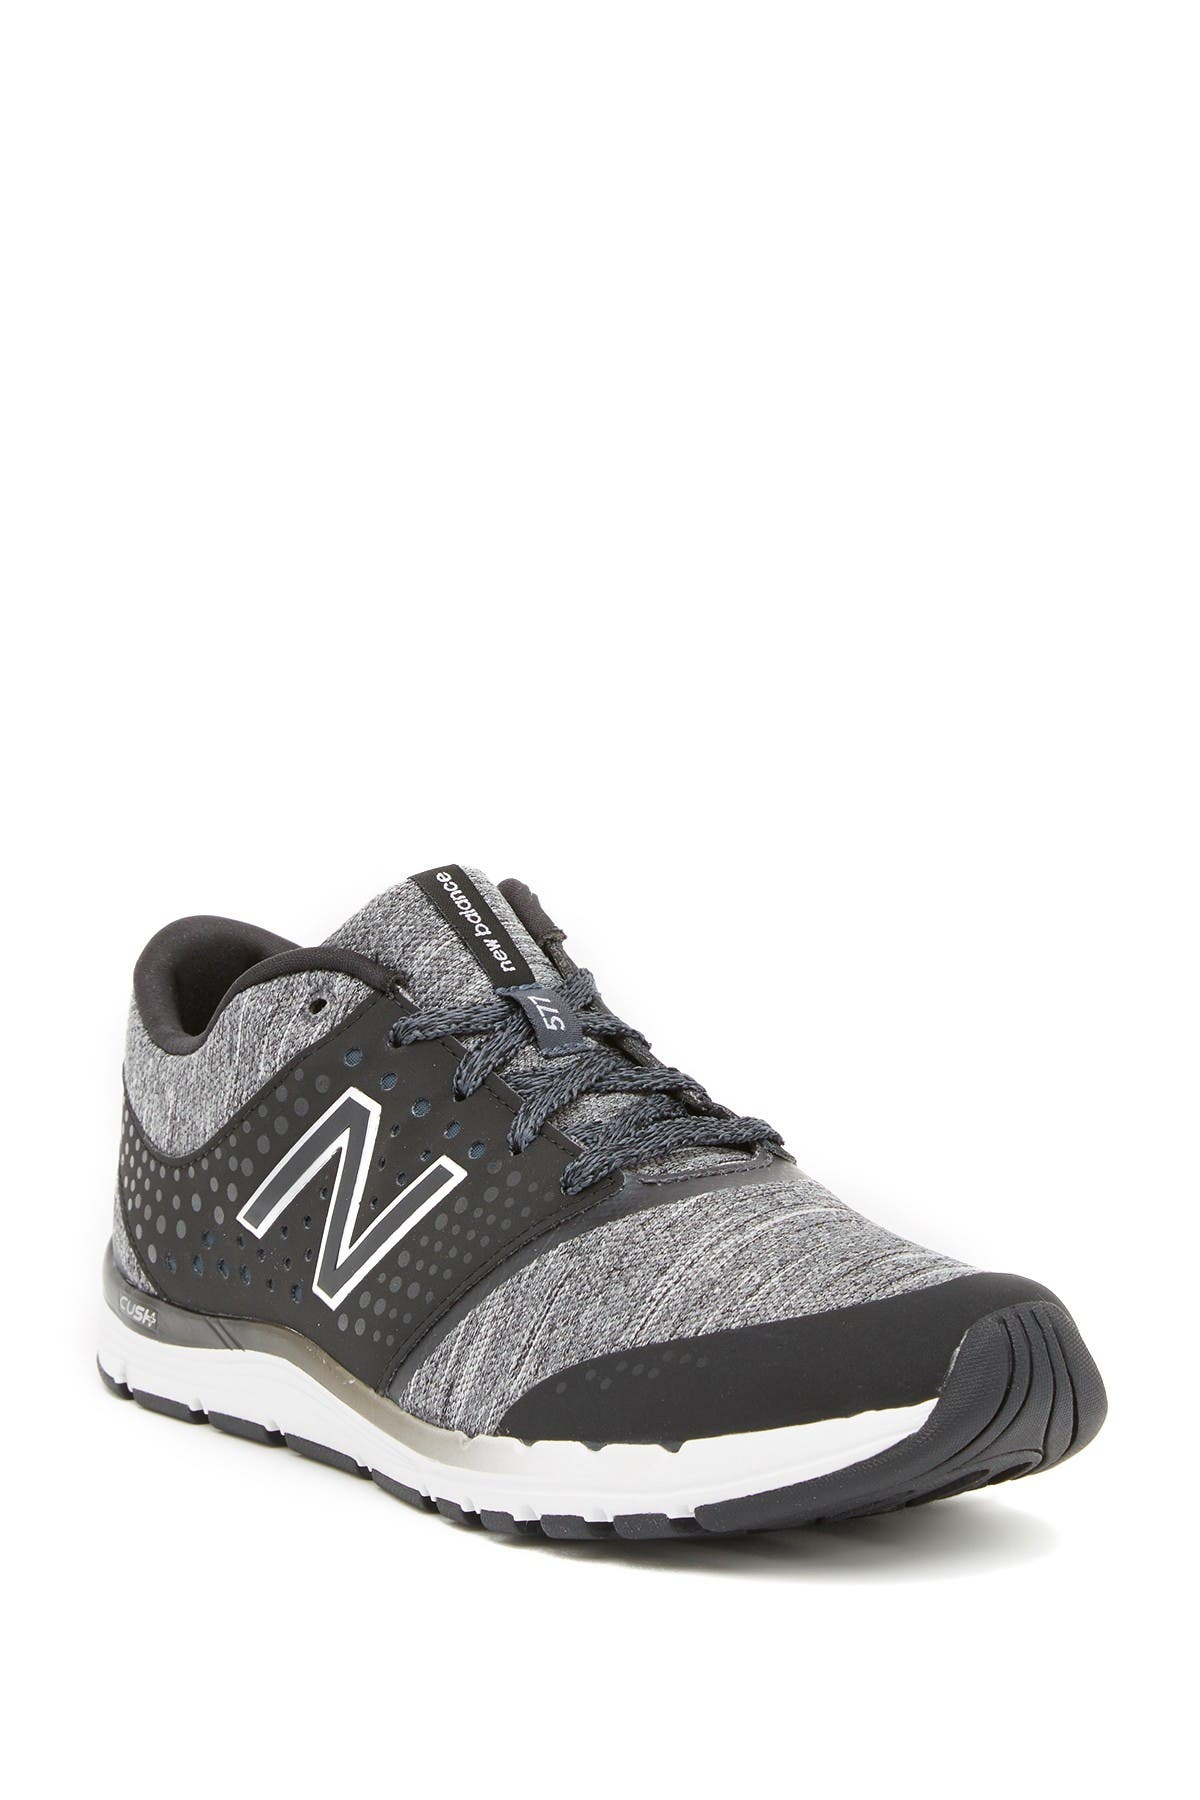 Image of New Balance 577 Training Sneaker - Wide Width Available